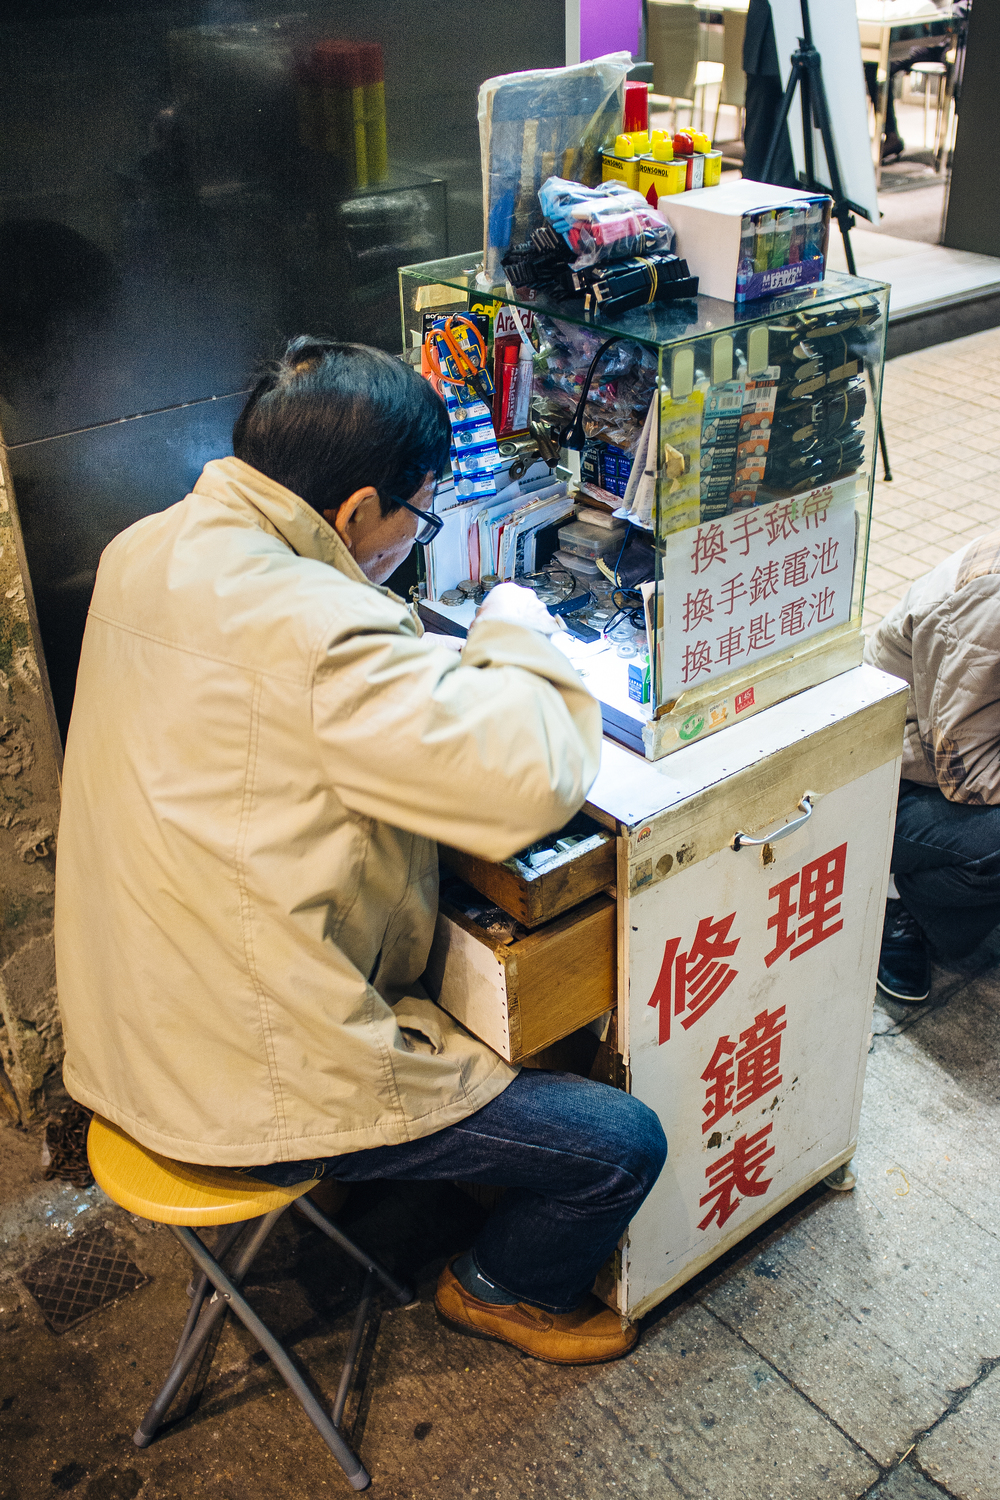 Mong Kok is lousy with these tiny watch repairmen.